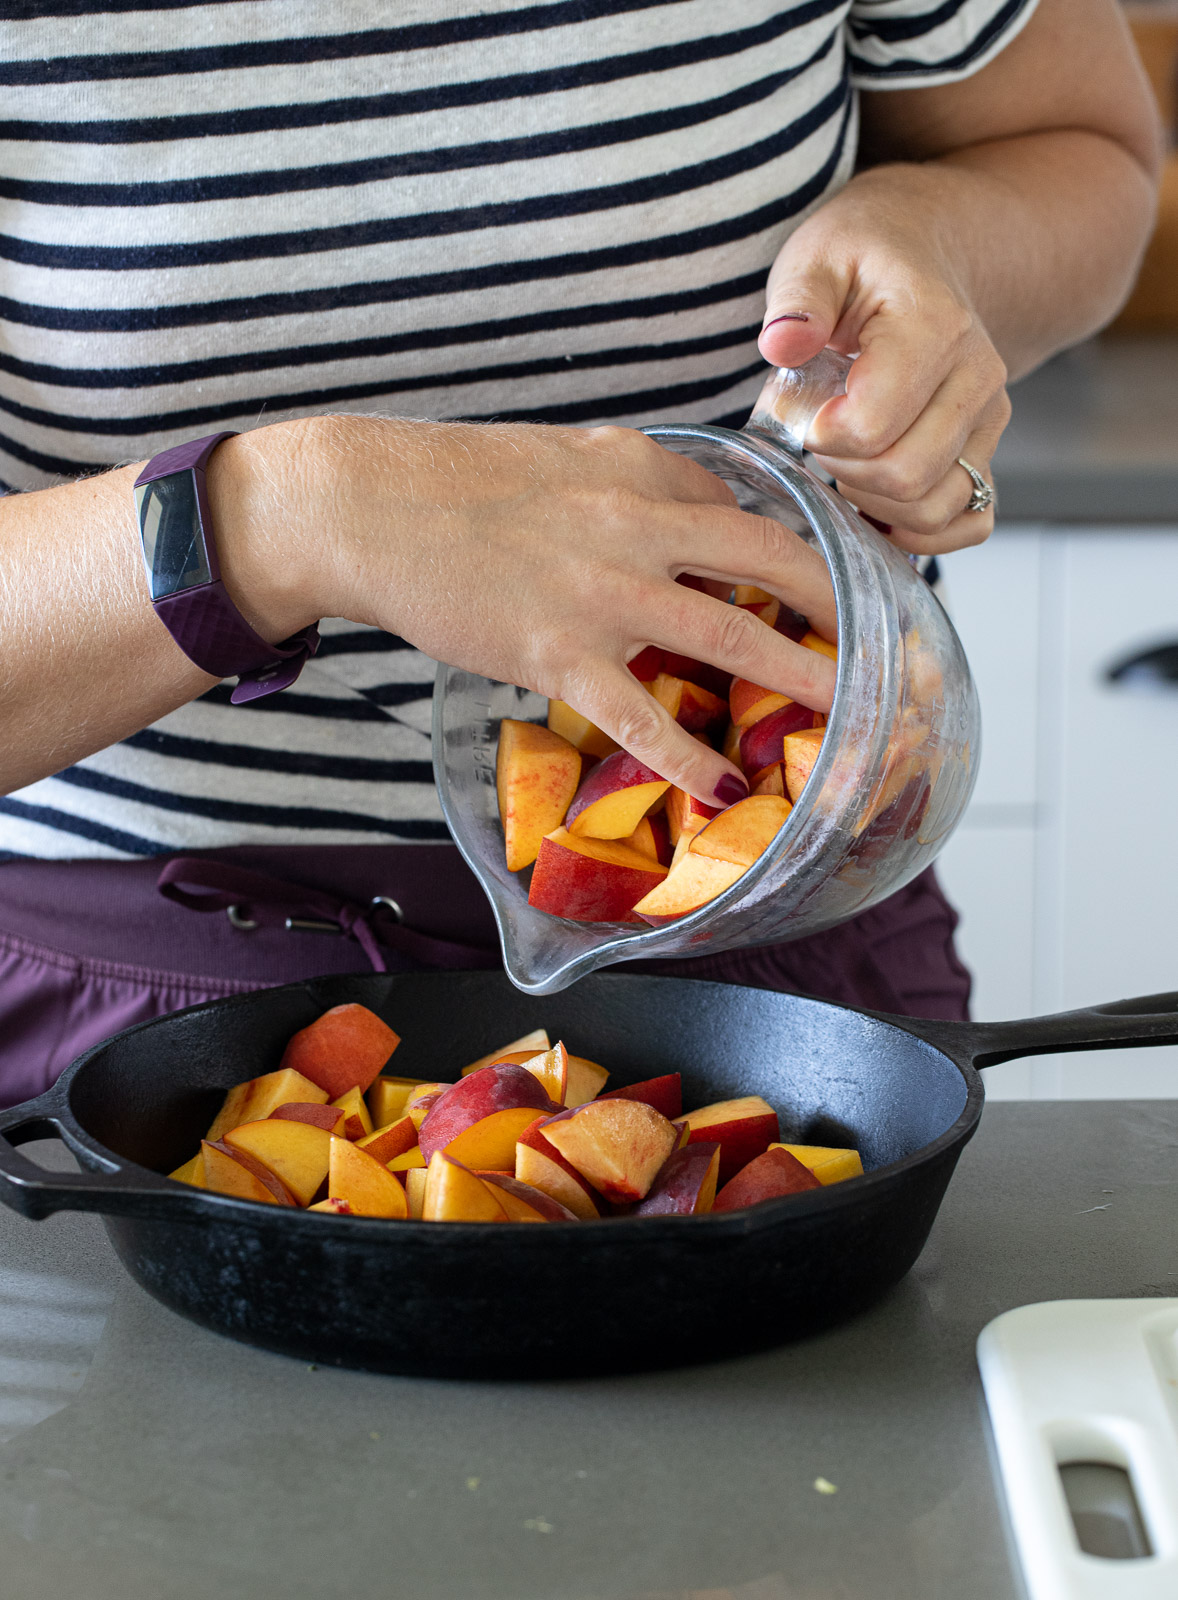 Woman adding peaches to a cast iron skillet.